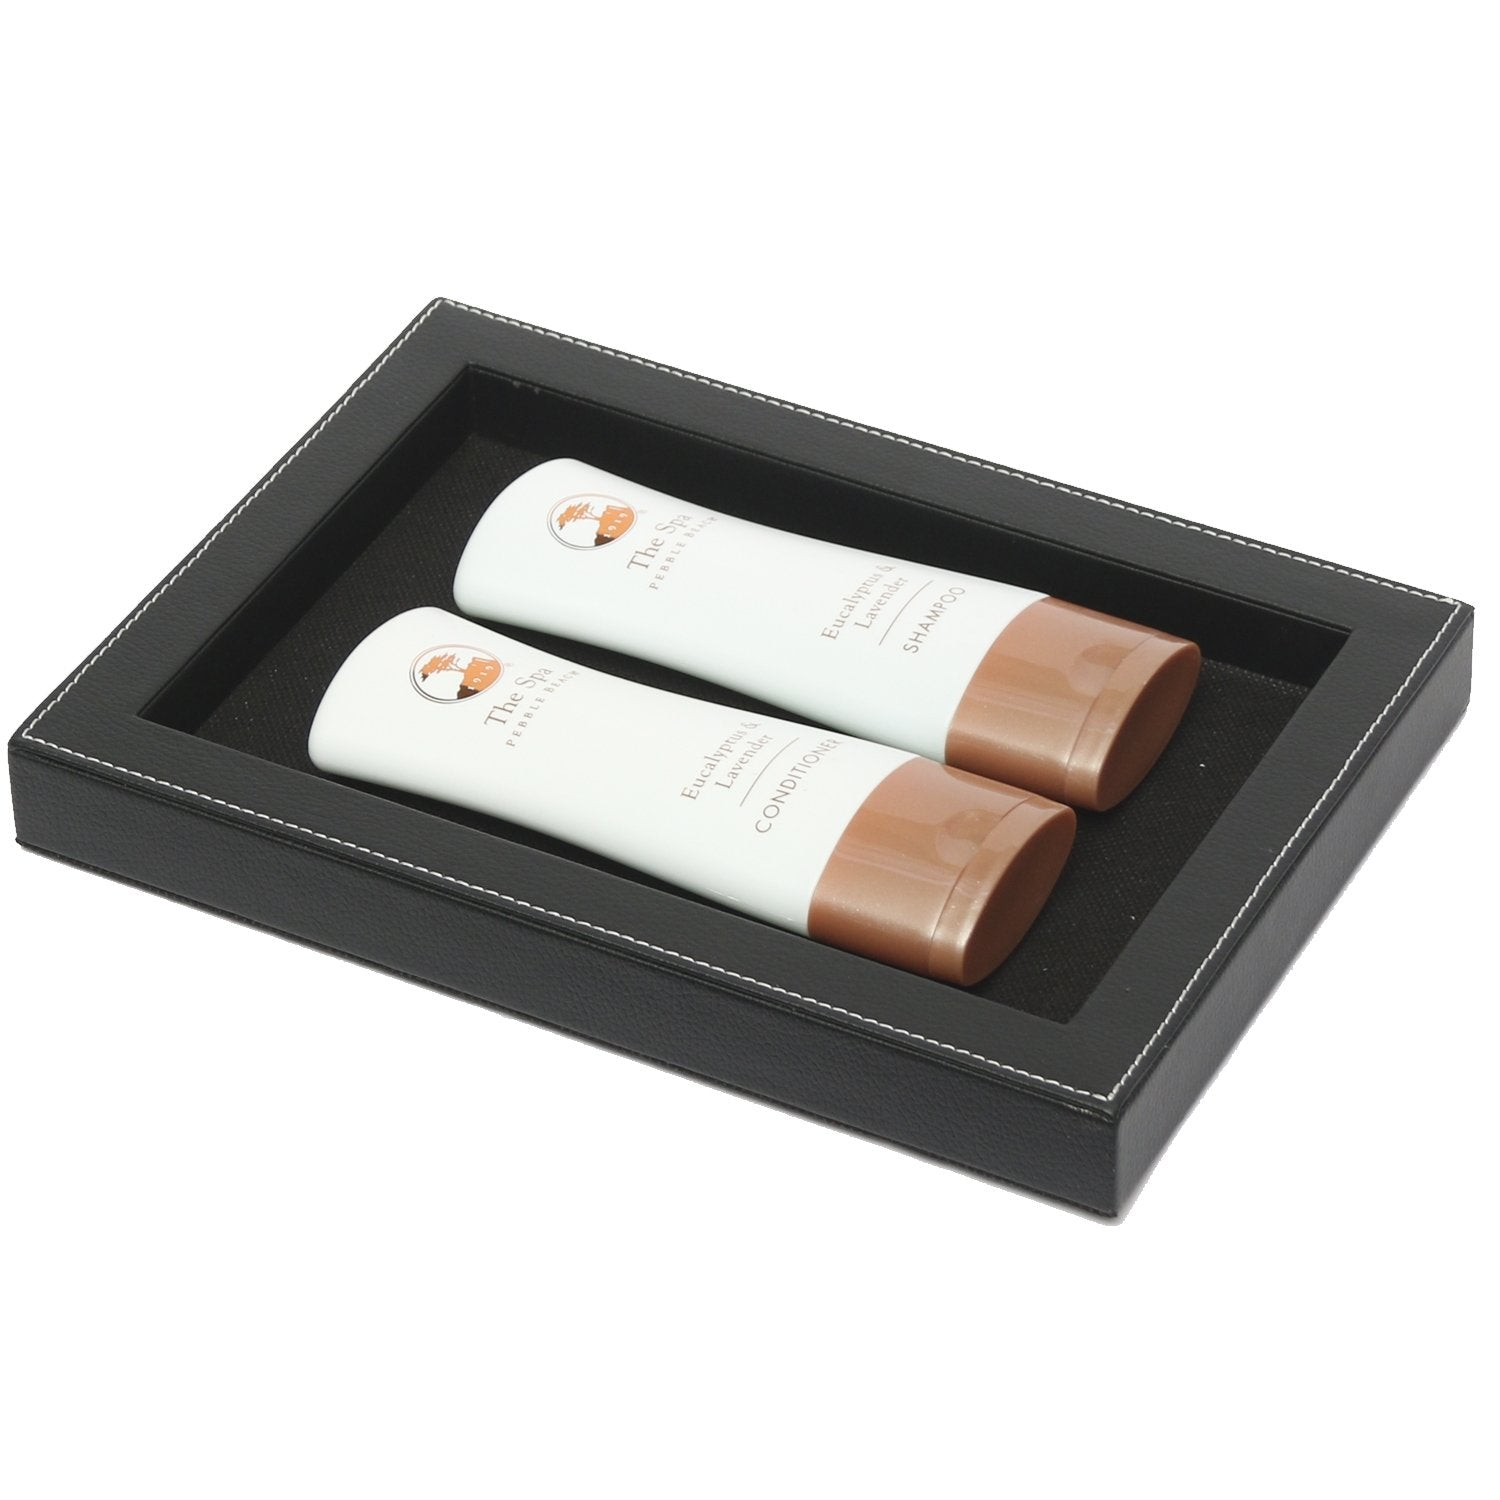 Framed Tray - Black Leatherette